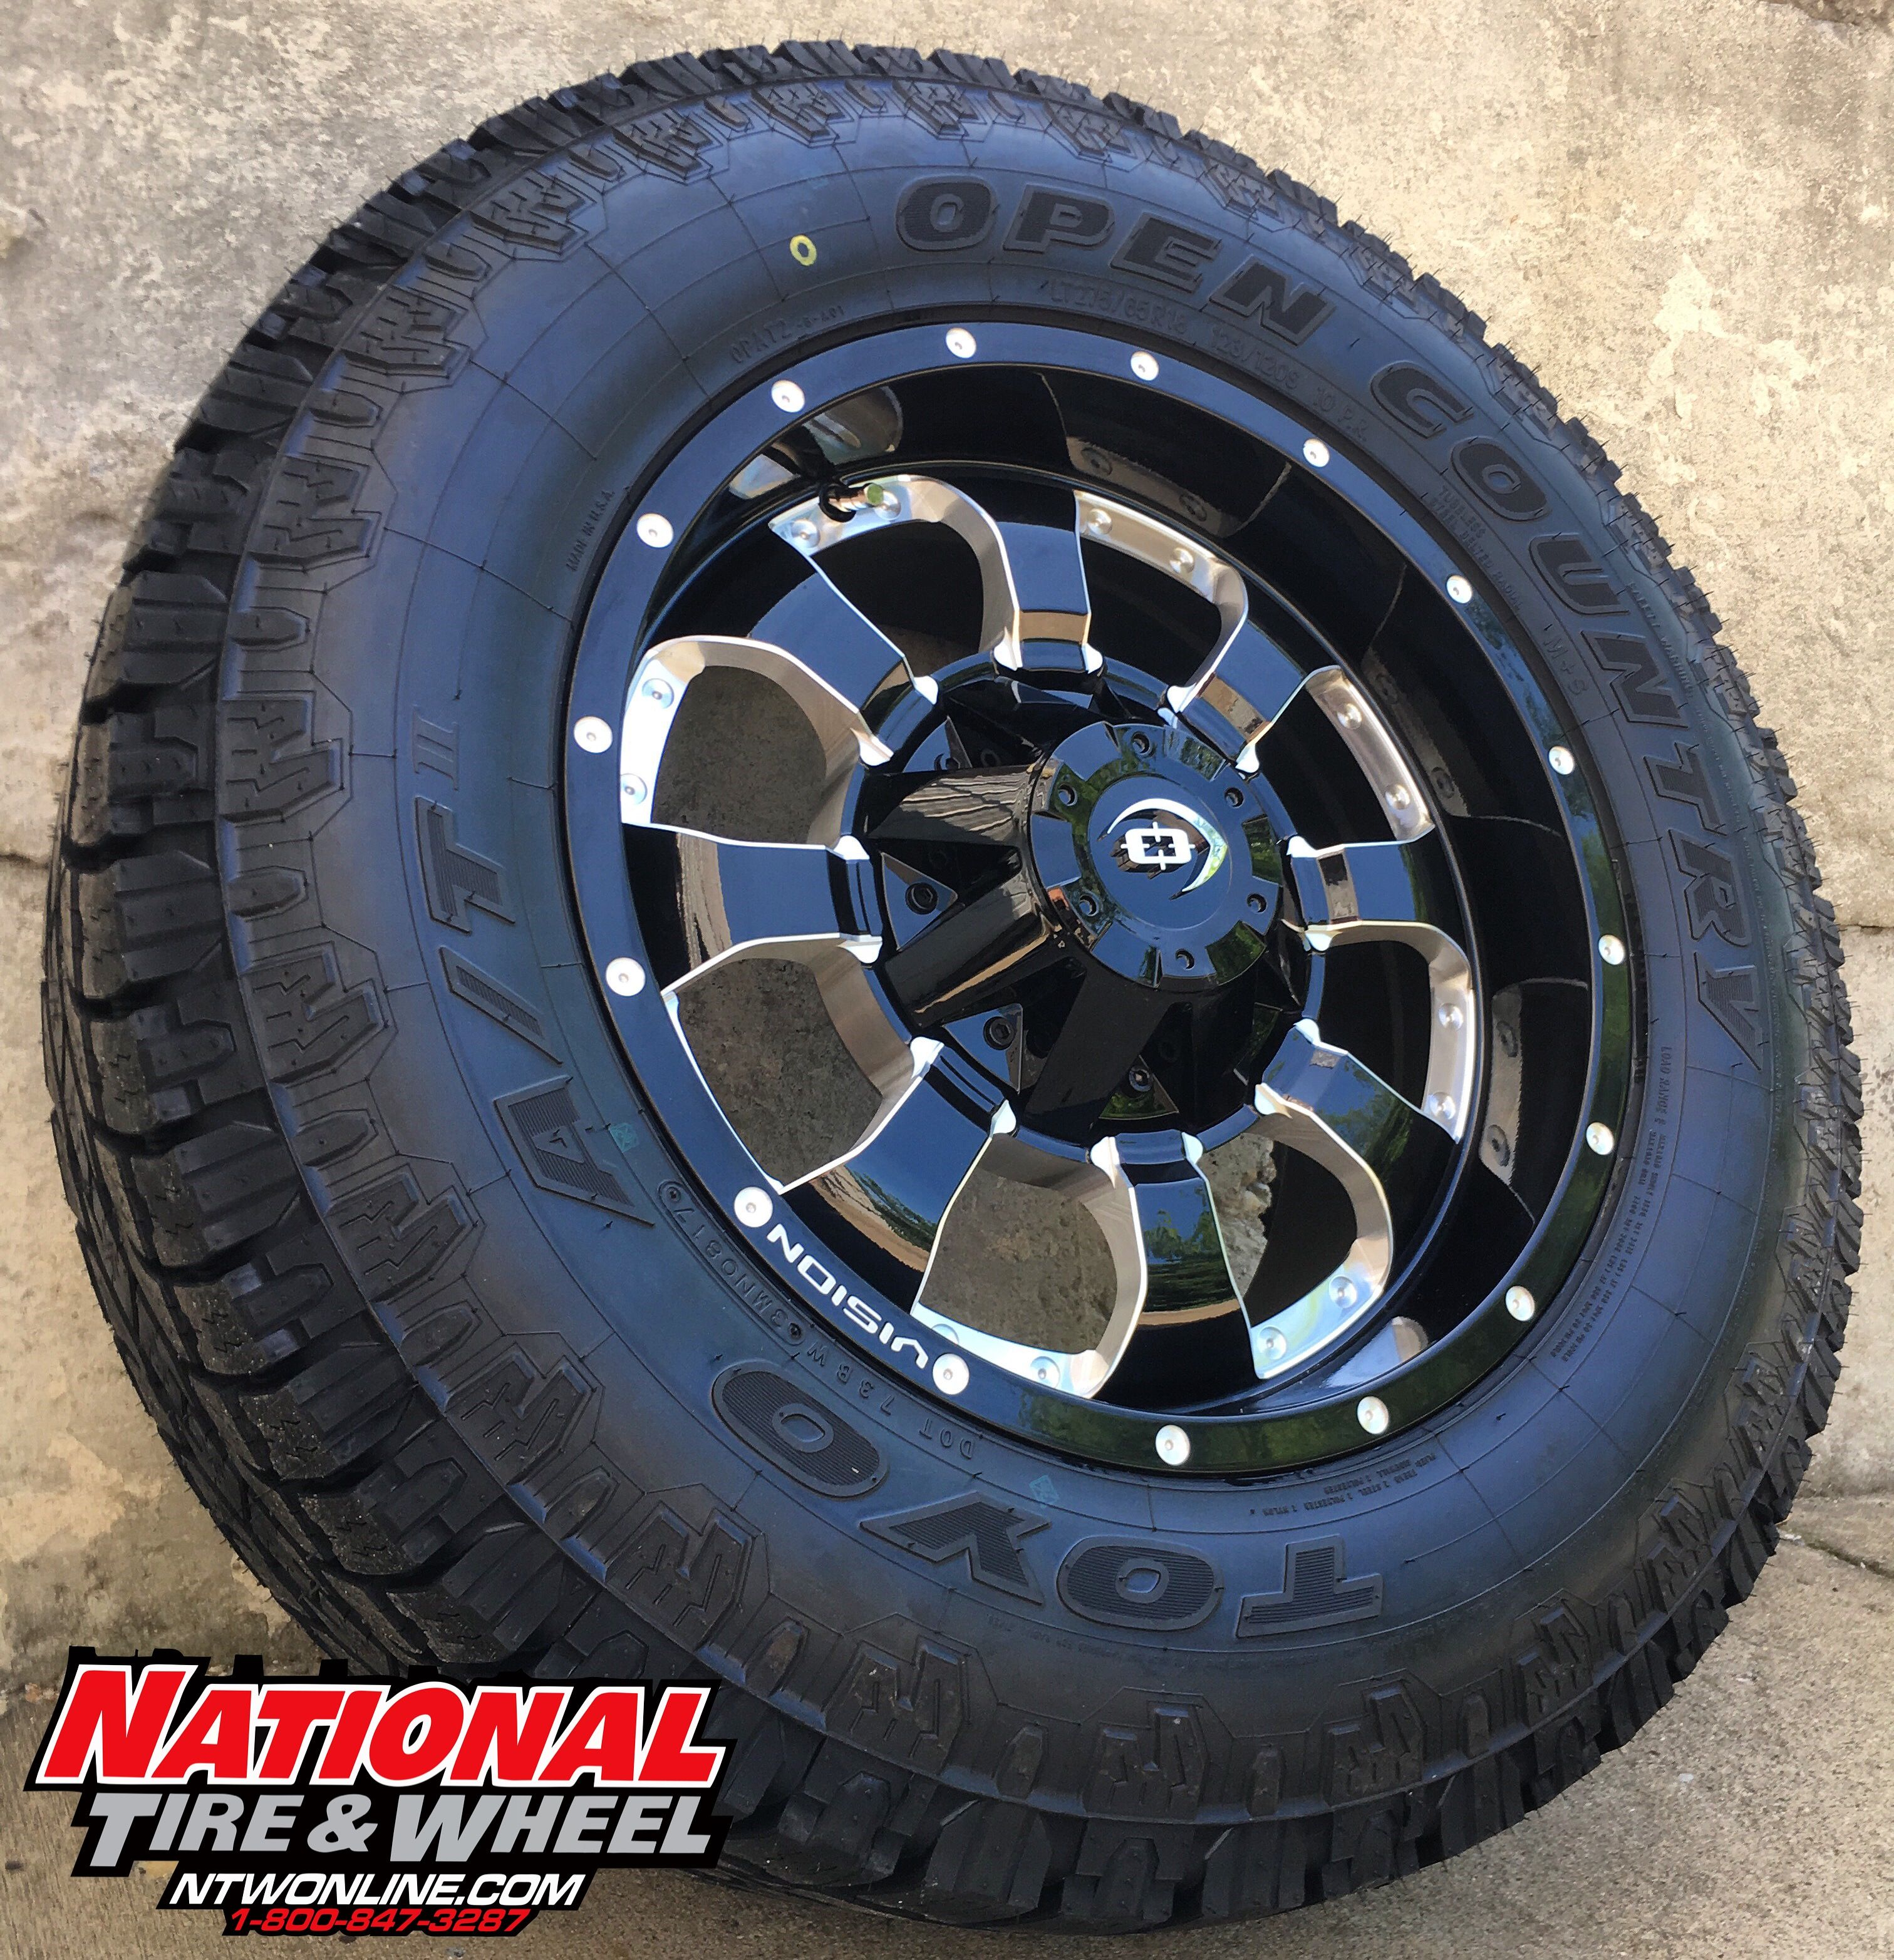 18X9 Vision Wheel Locker mounted up to a 275 65R18 Toyo Tires Ipen